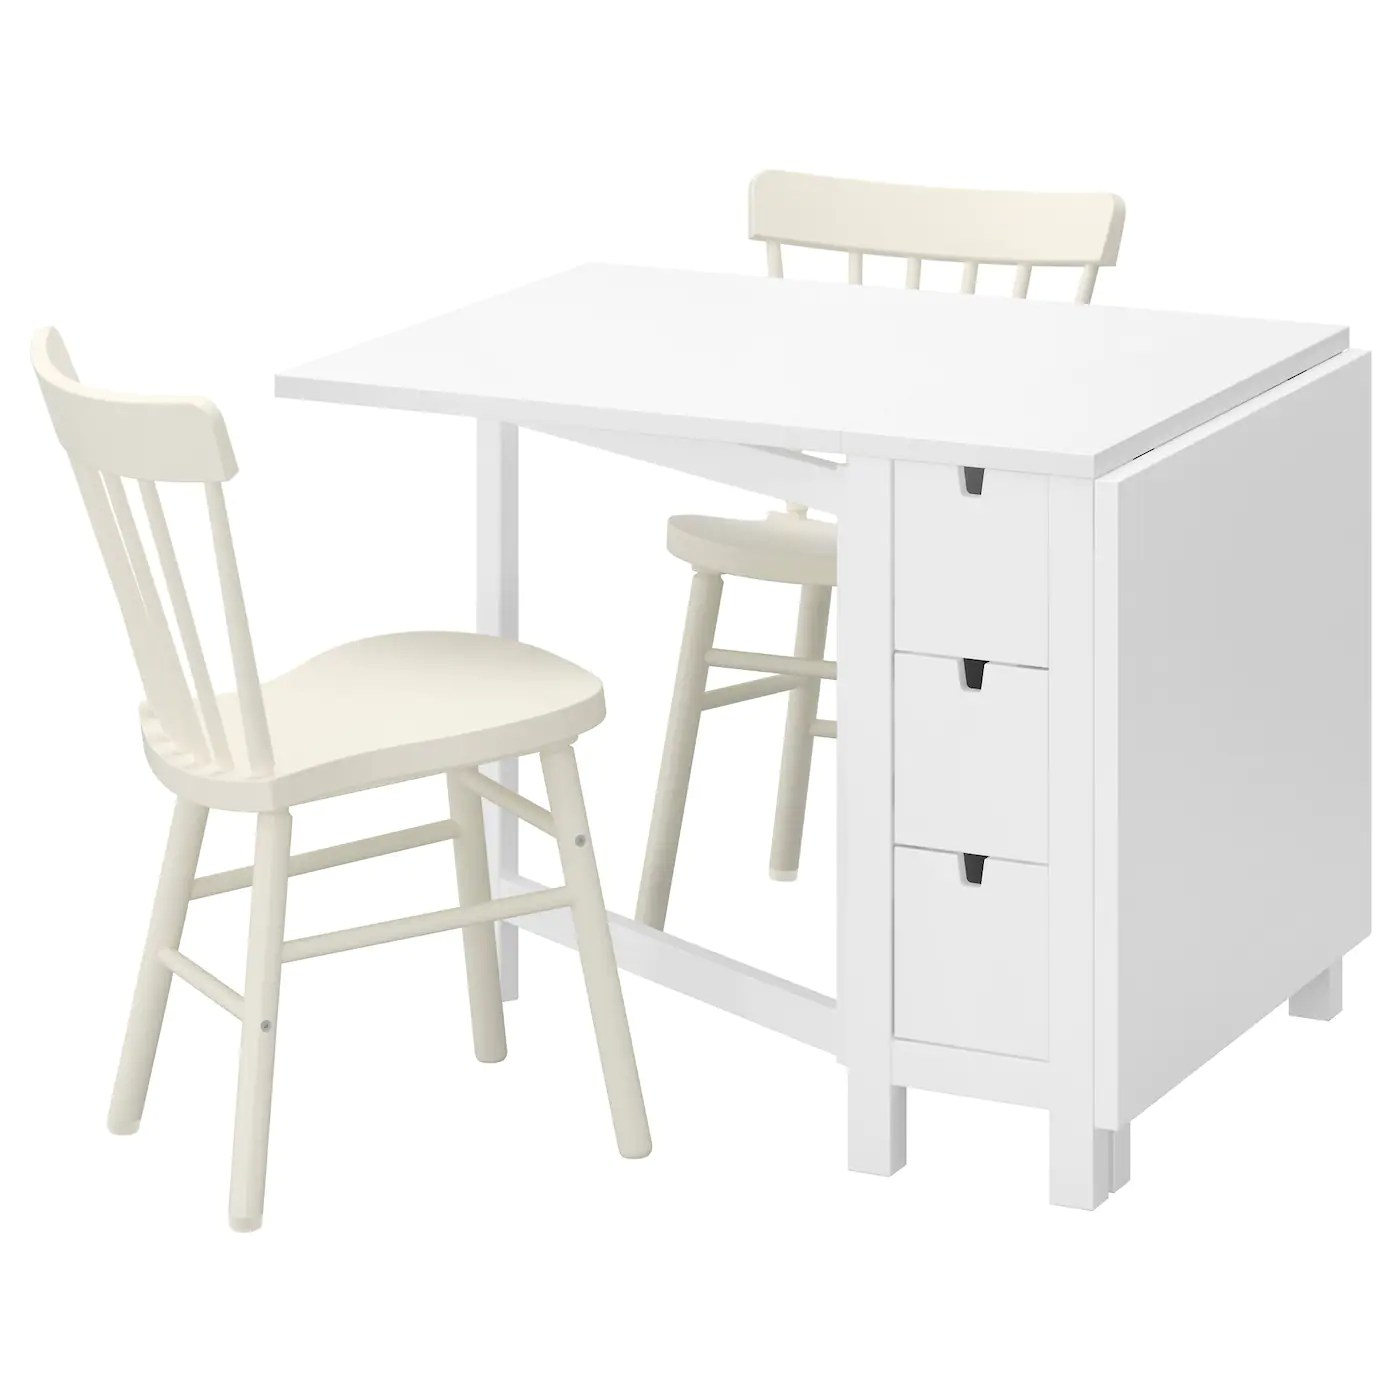 white folding chairs ikea chair covers cheap norden norraryd table and 2 89 cm